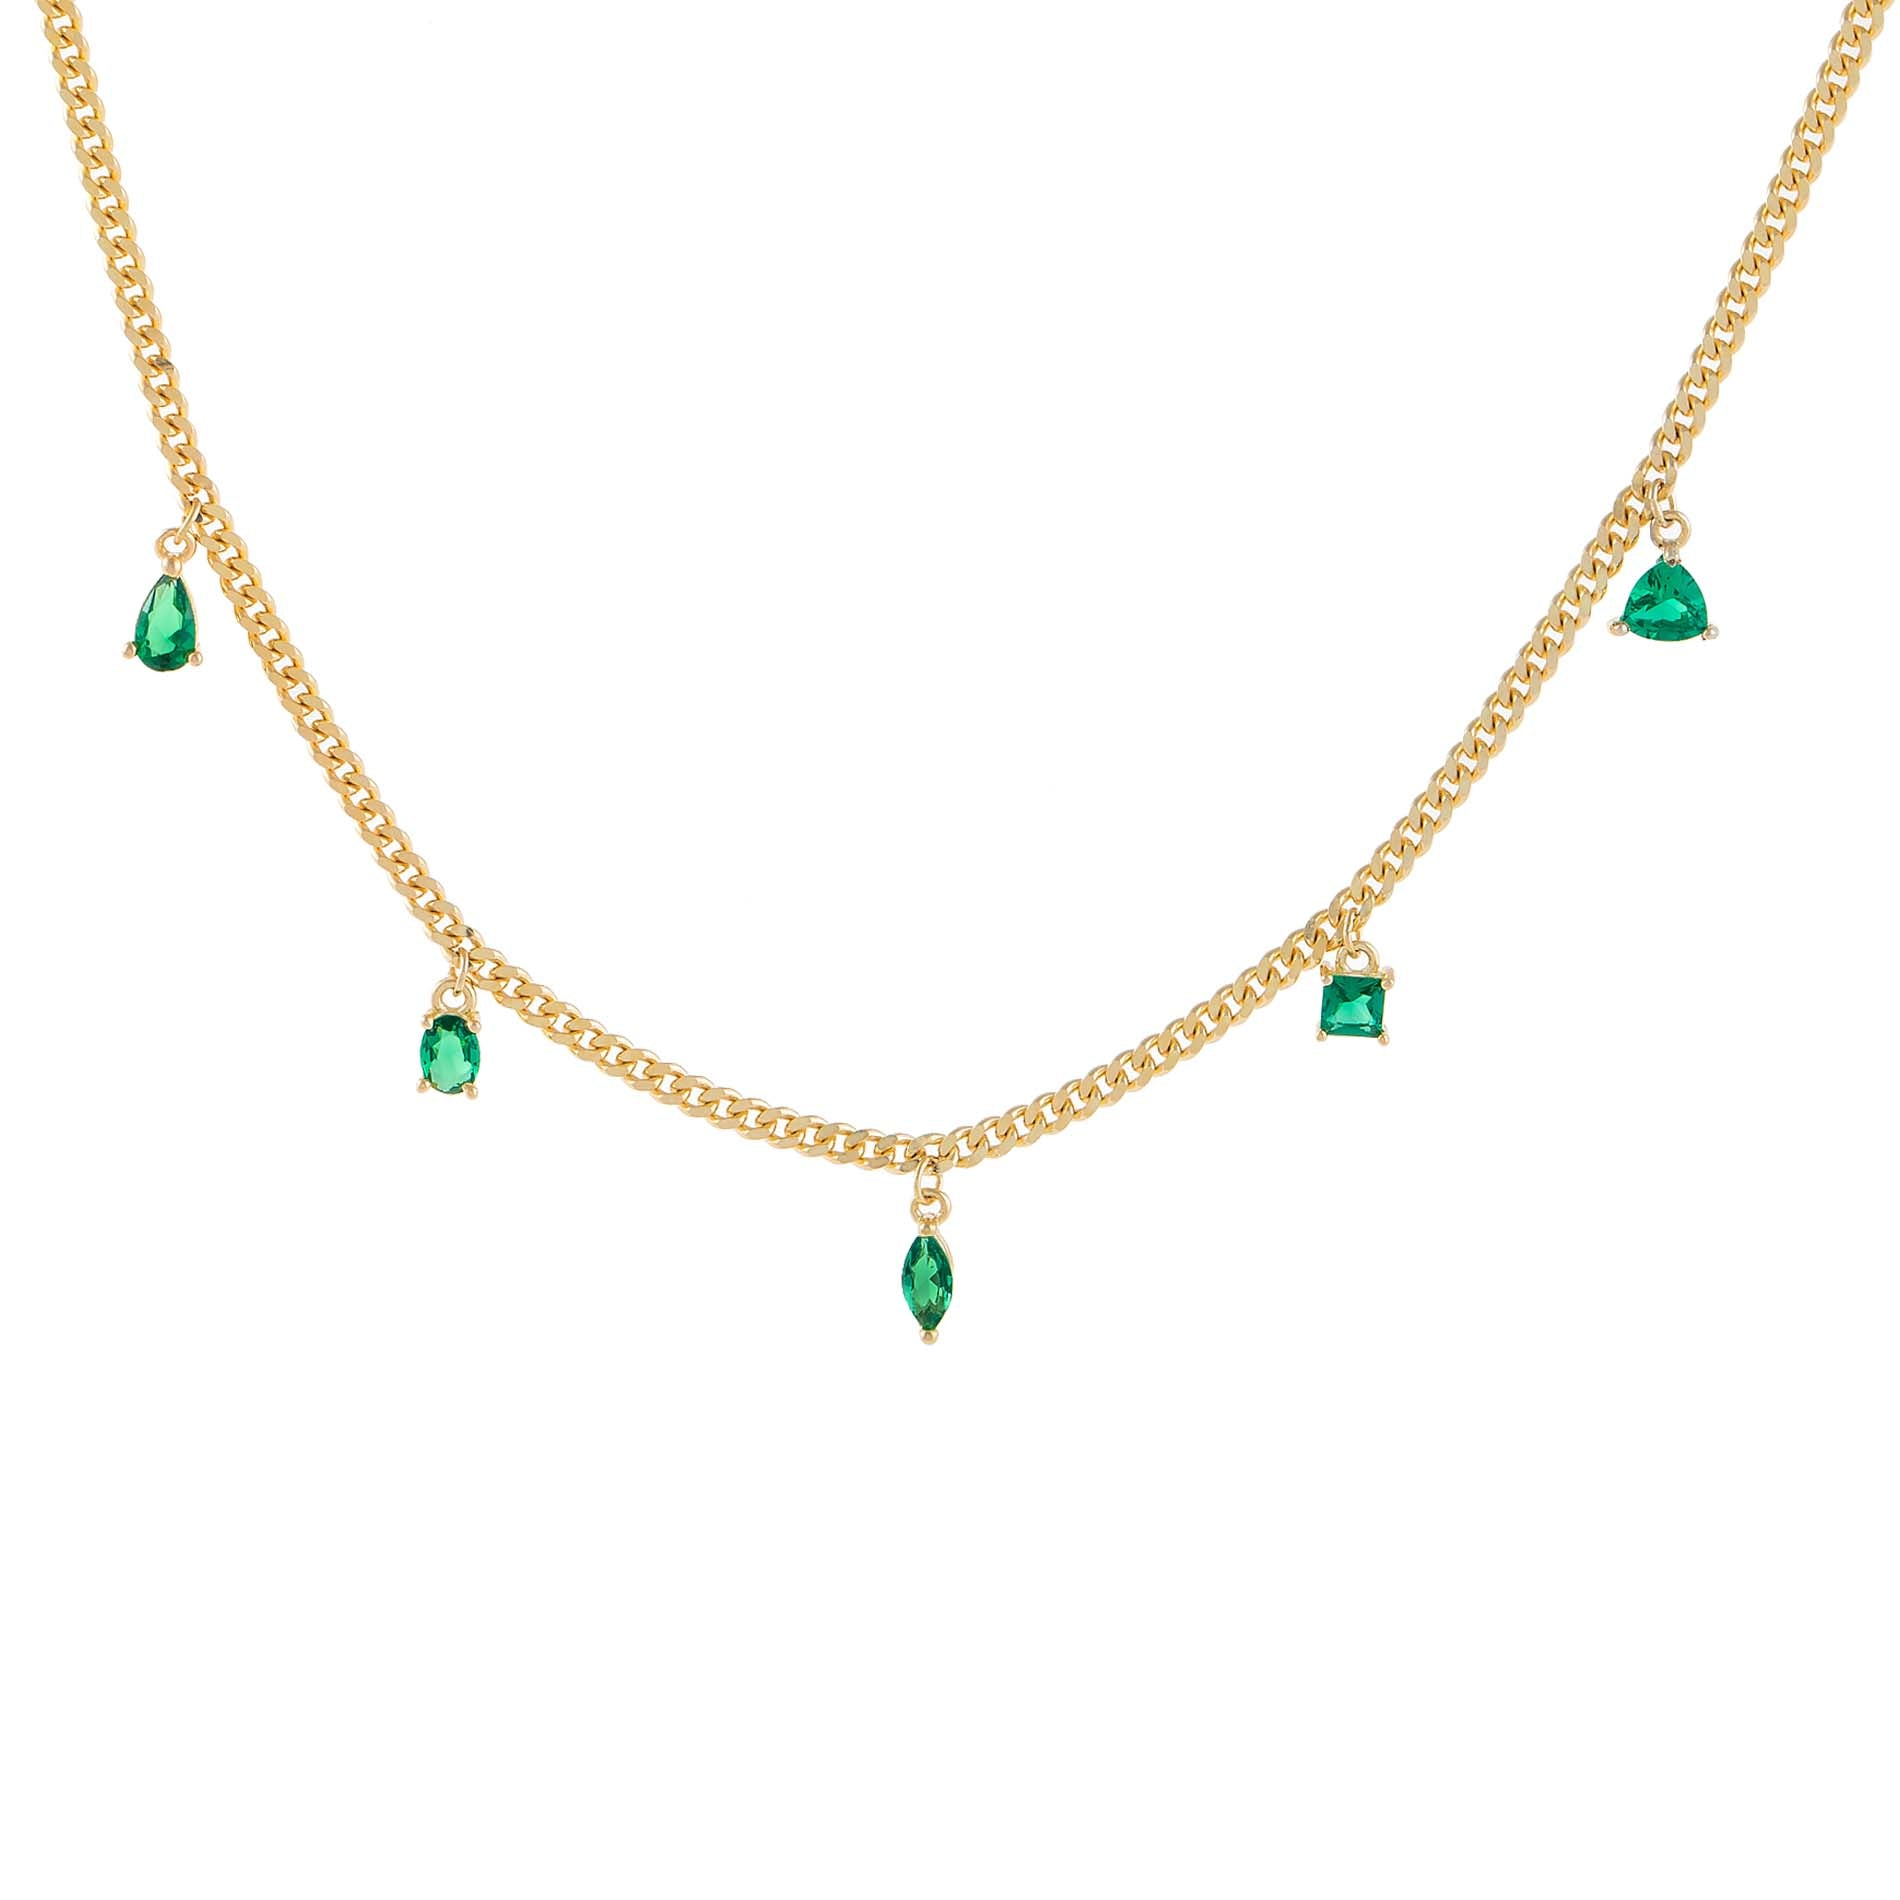 14k Gold Chain Necklace Tiny Dainty Necklace with Cubic Zirconia Stones as Gift for her Emerald Green CZ Stone Charm Necklace